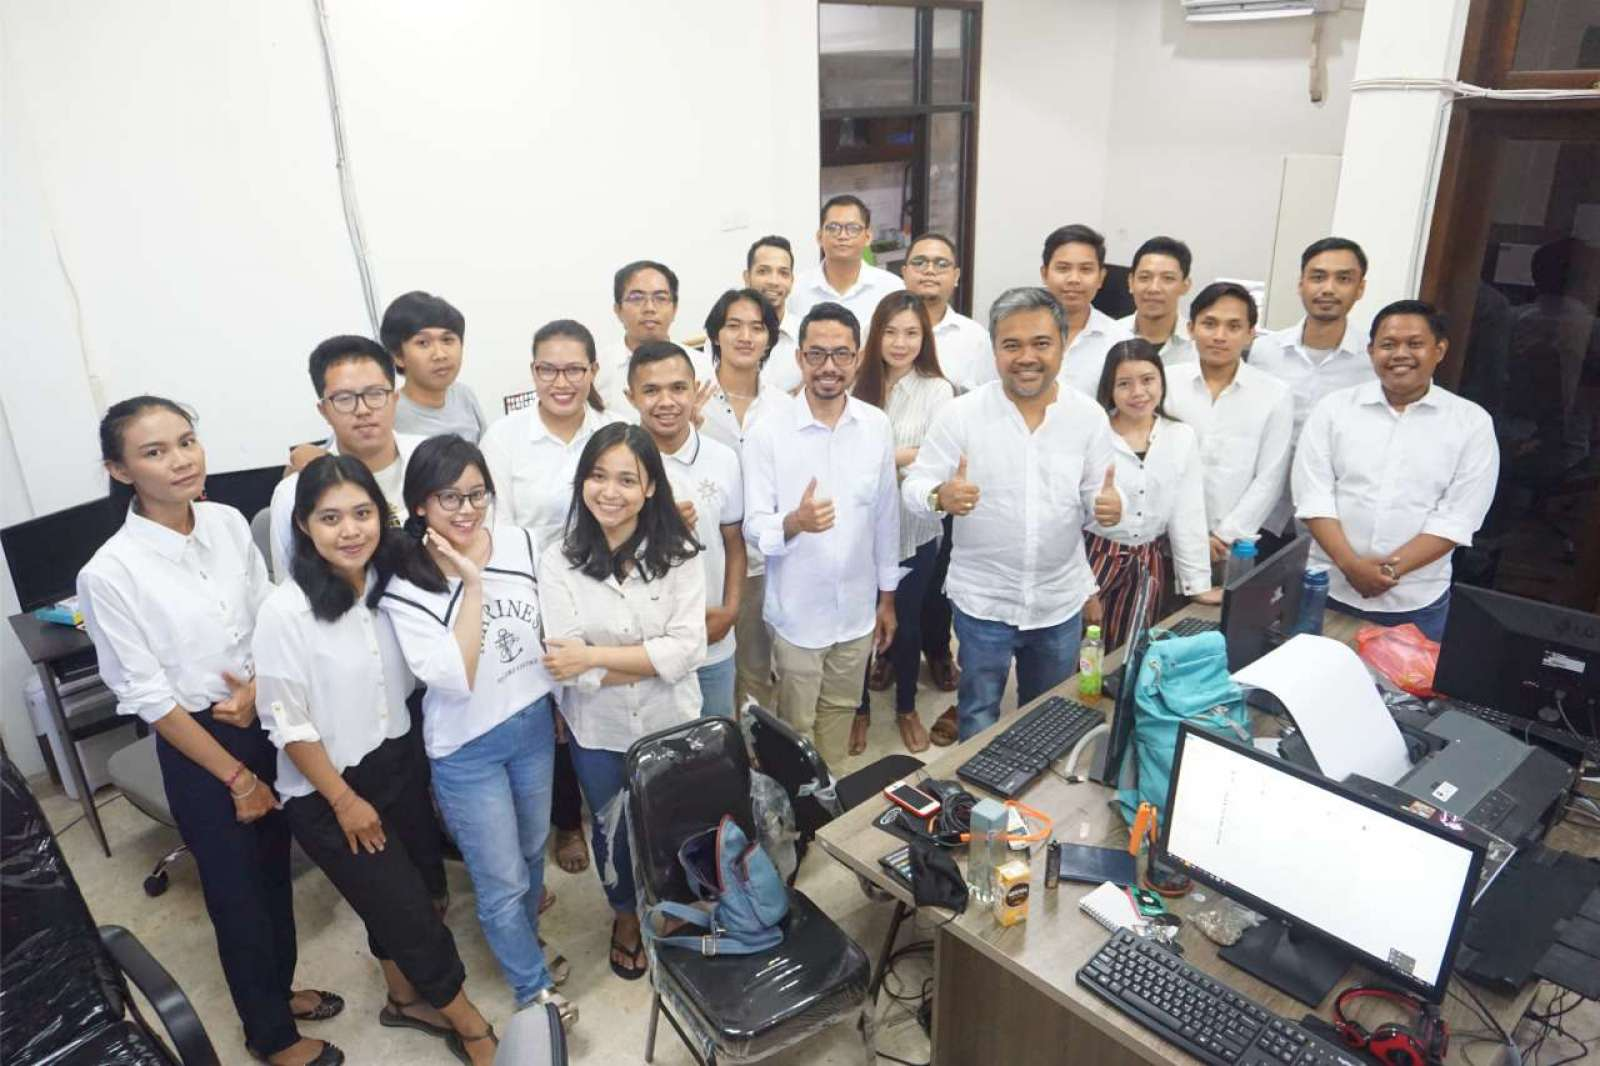 Photo with the Emporio Bali Architect Team Before Working From Home Because of the COVID-19 Virus Pa 3